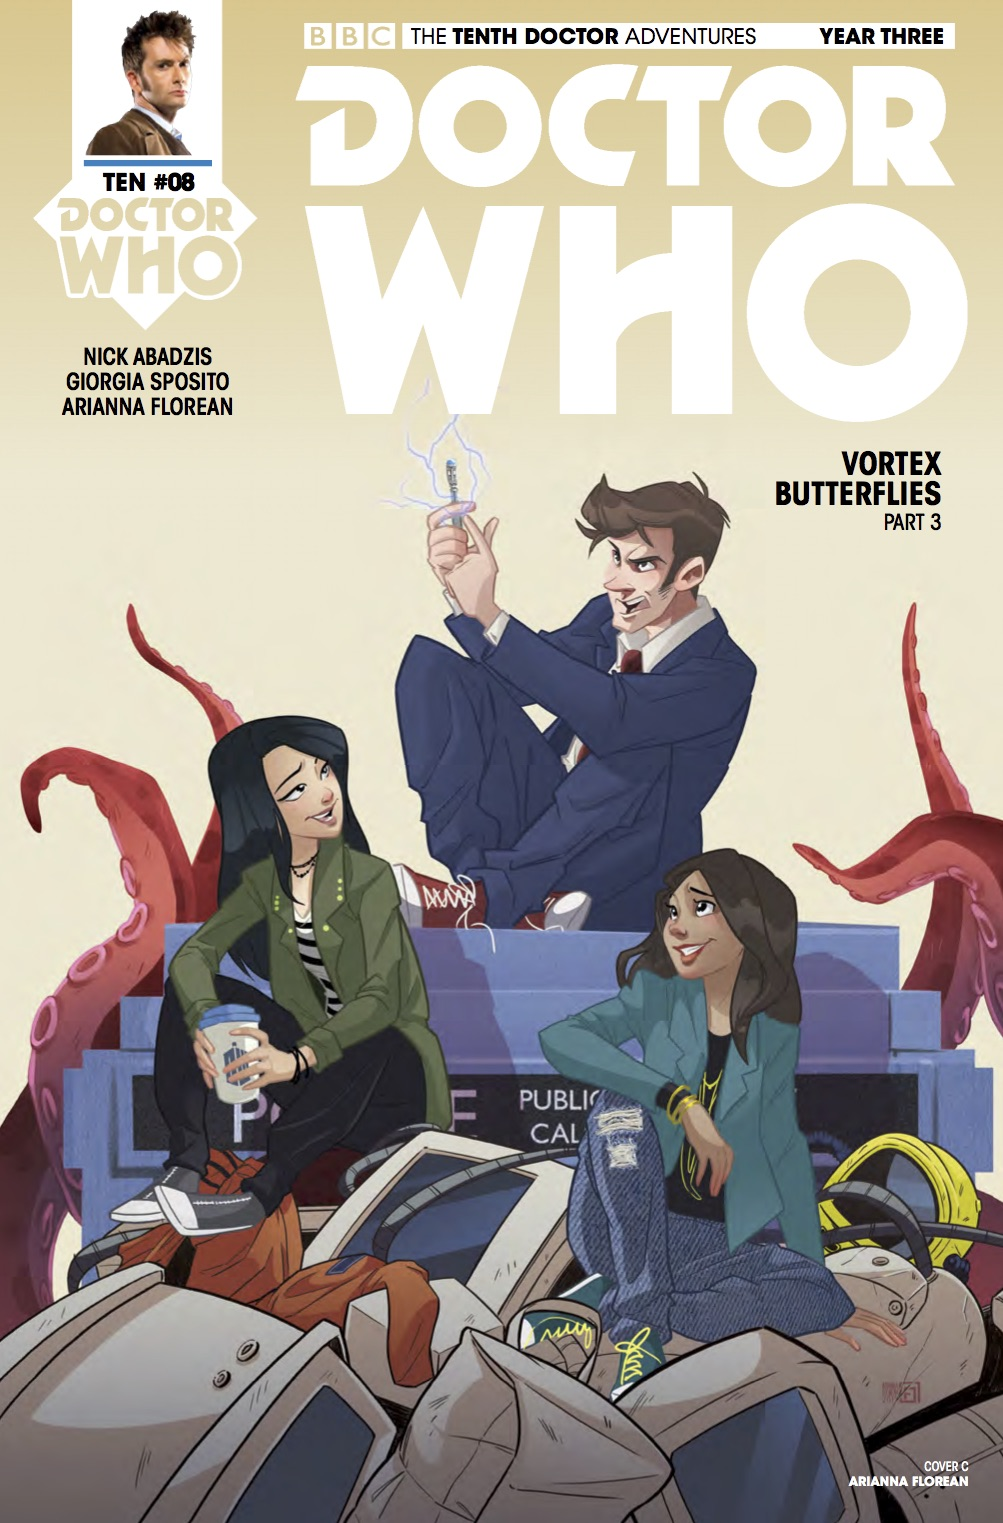 Doctor Who: Tenth Doctor Year Three #8 Cover C (Credit: Titan / Arianna Florean)